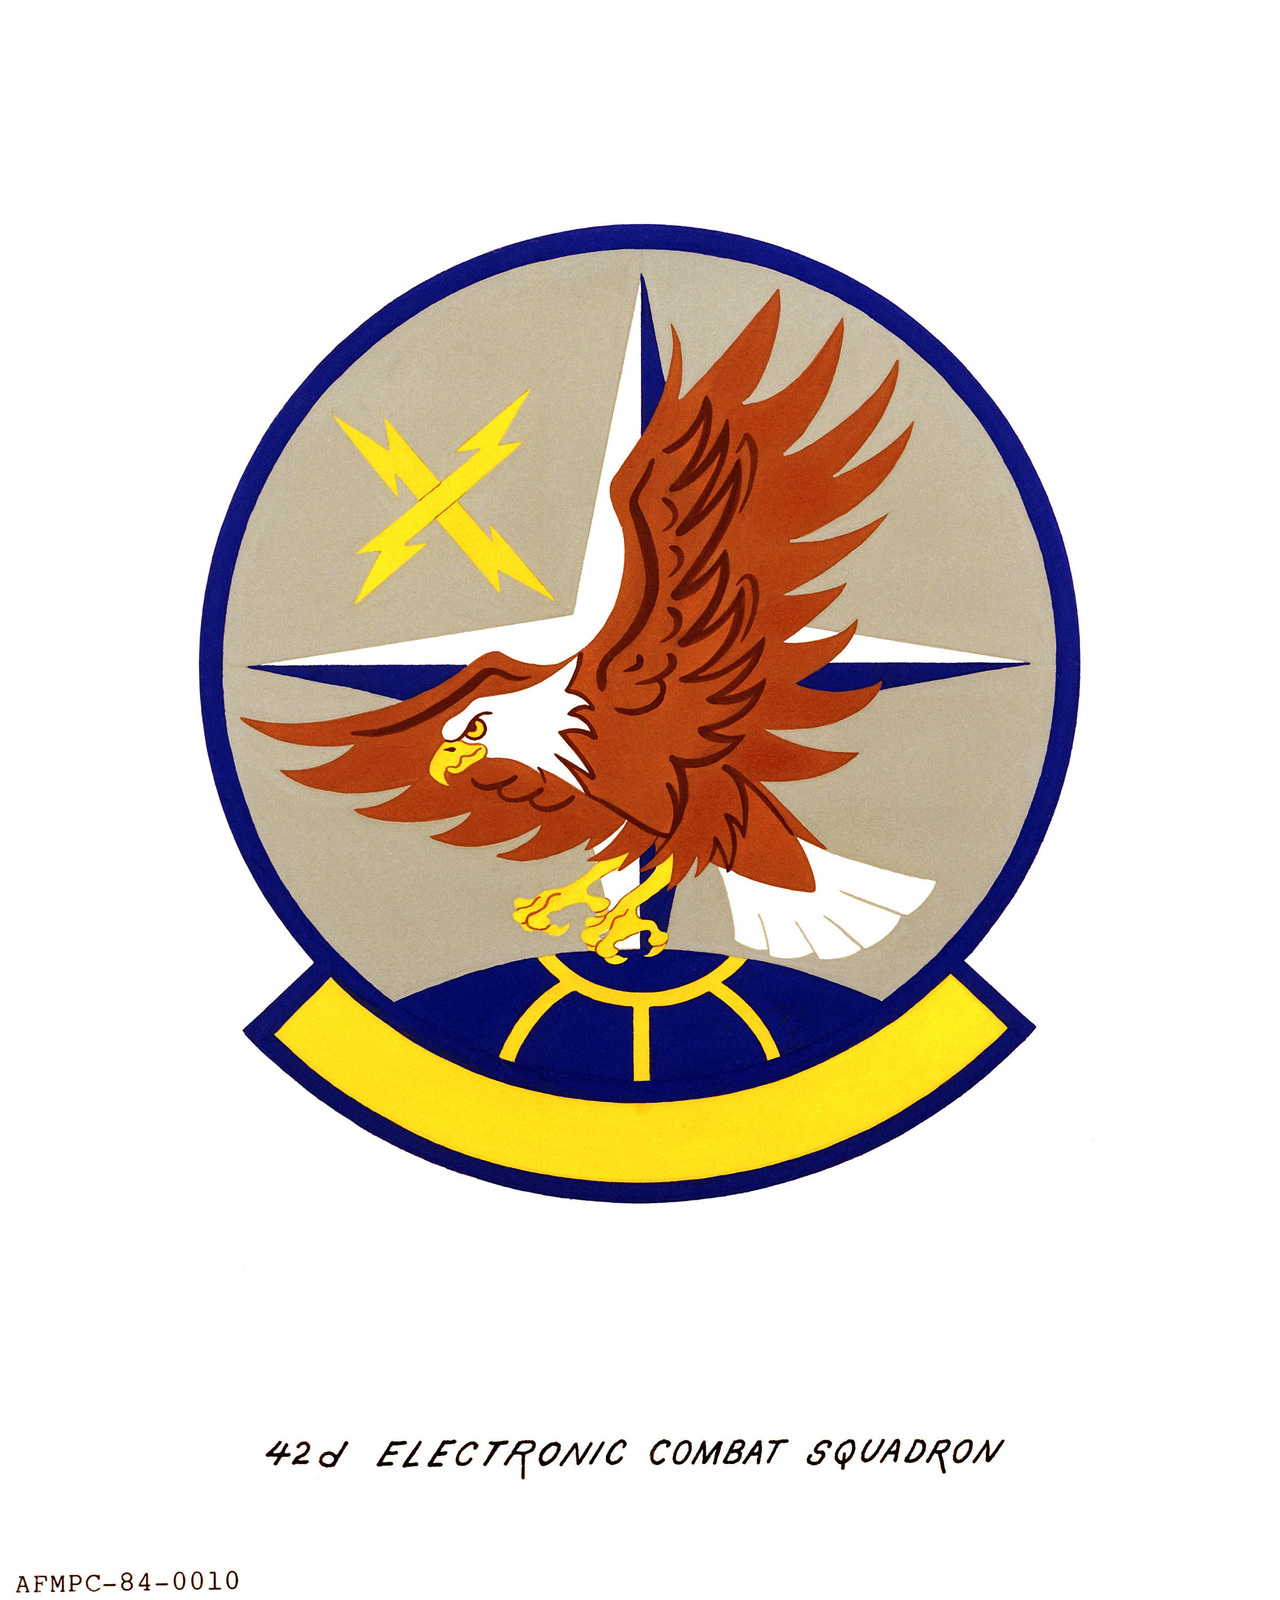 Approved insignia for: 42nd Electronic Combat Squadron